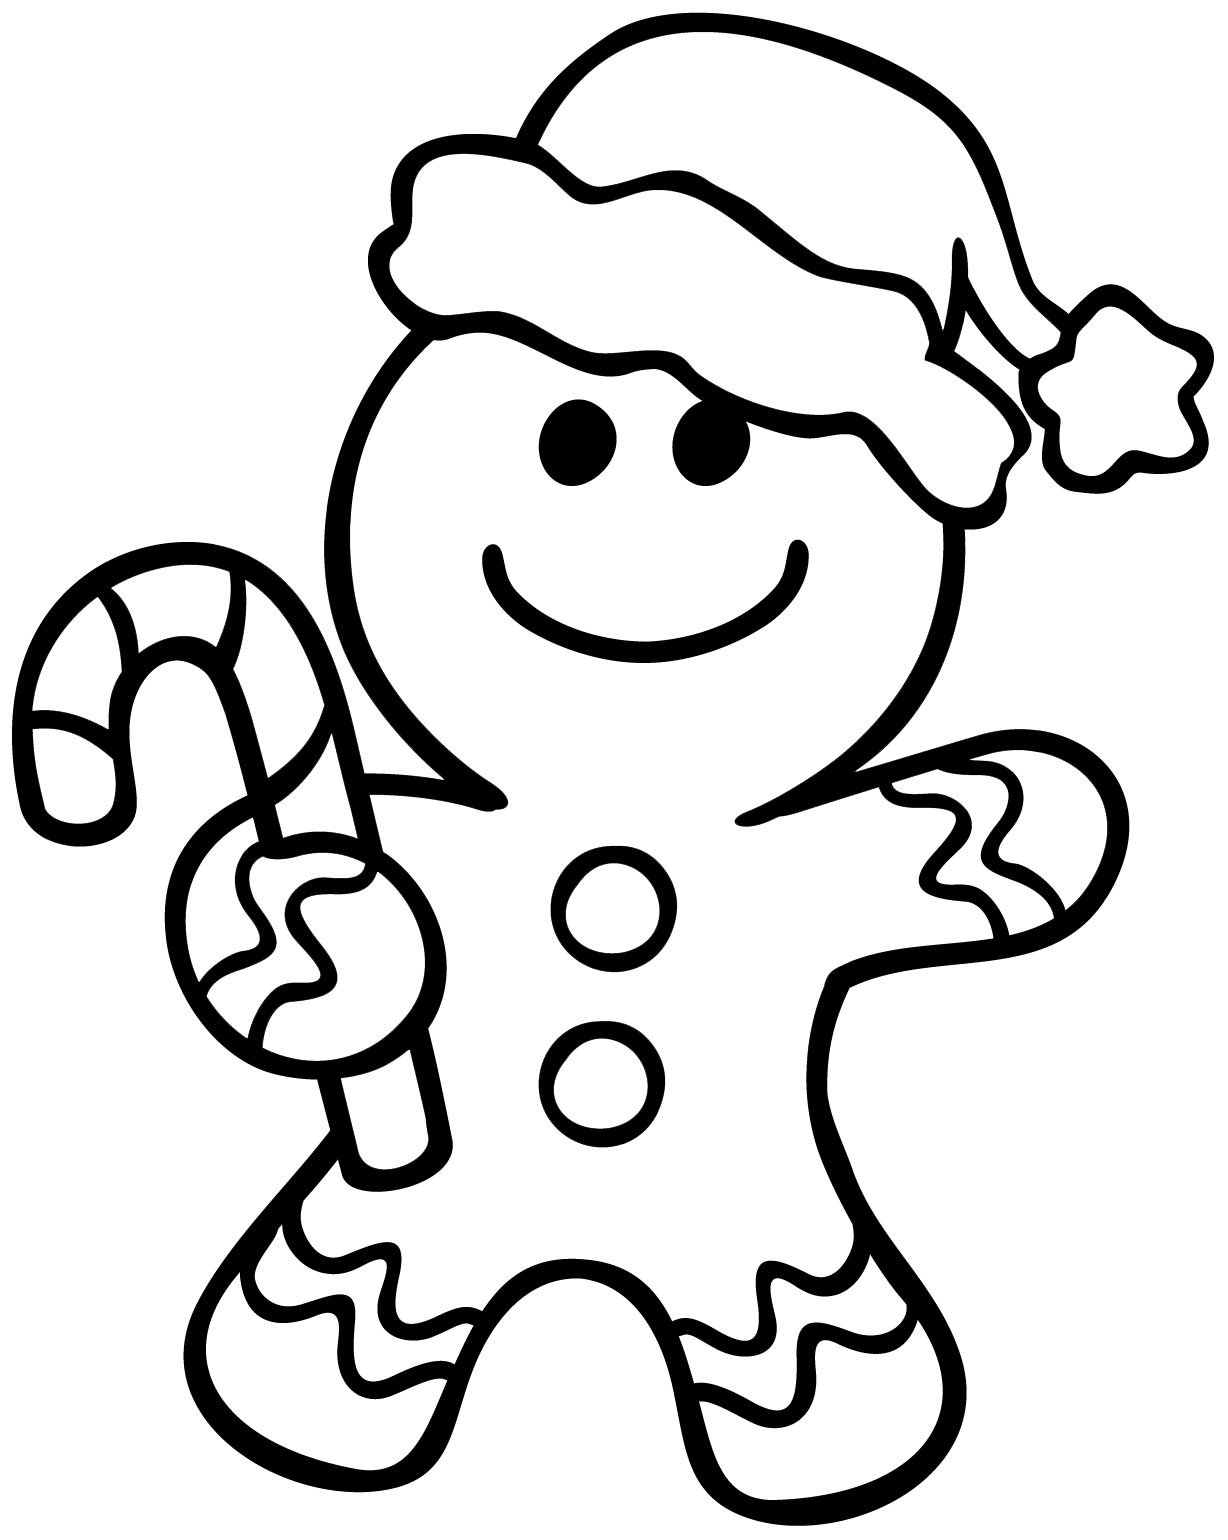 gingerbread man coloring pages printable christmas gingerbread man coloring page free printable coloring gingerbread pages printable man